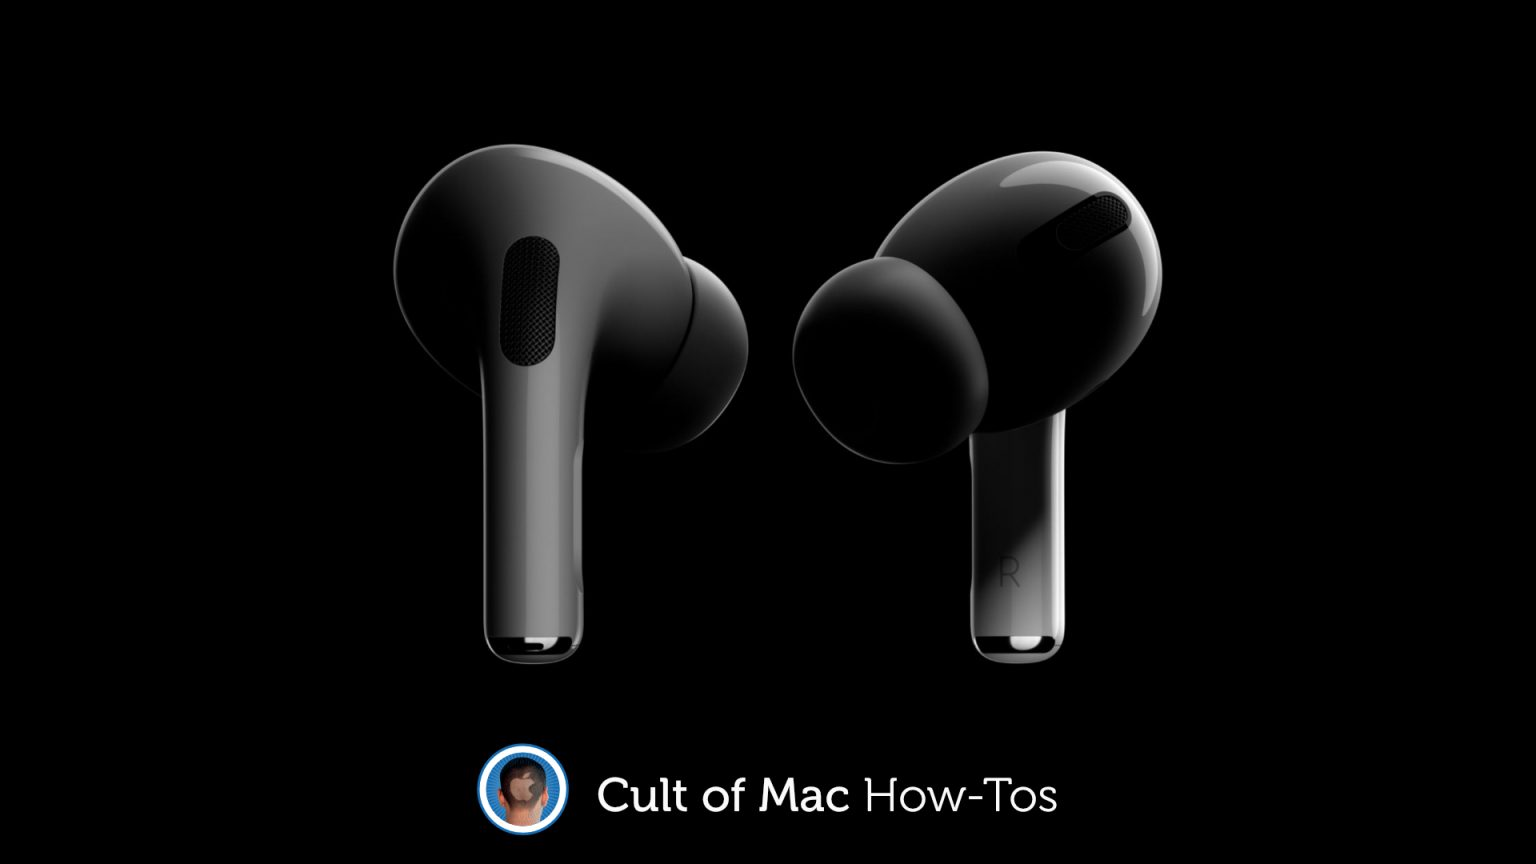 How to install AirPods Pro beta firmware